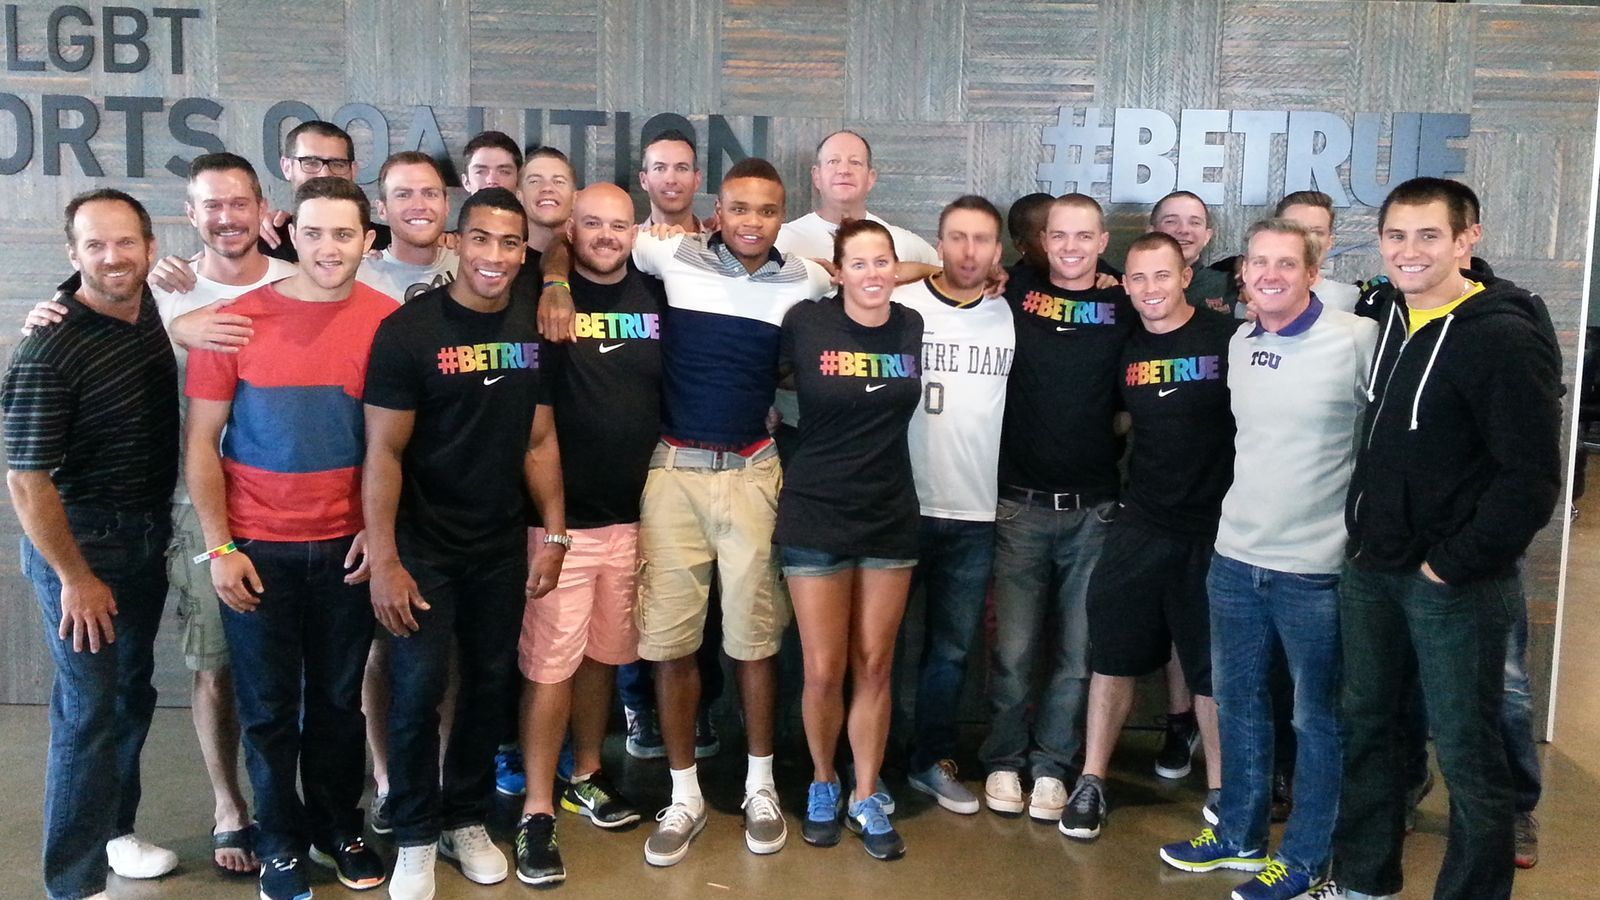 GO! Athletes builds support network of LGBT high school & college athletes